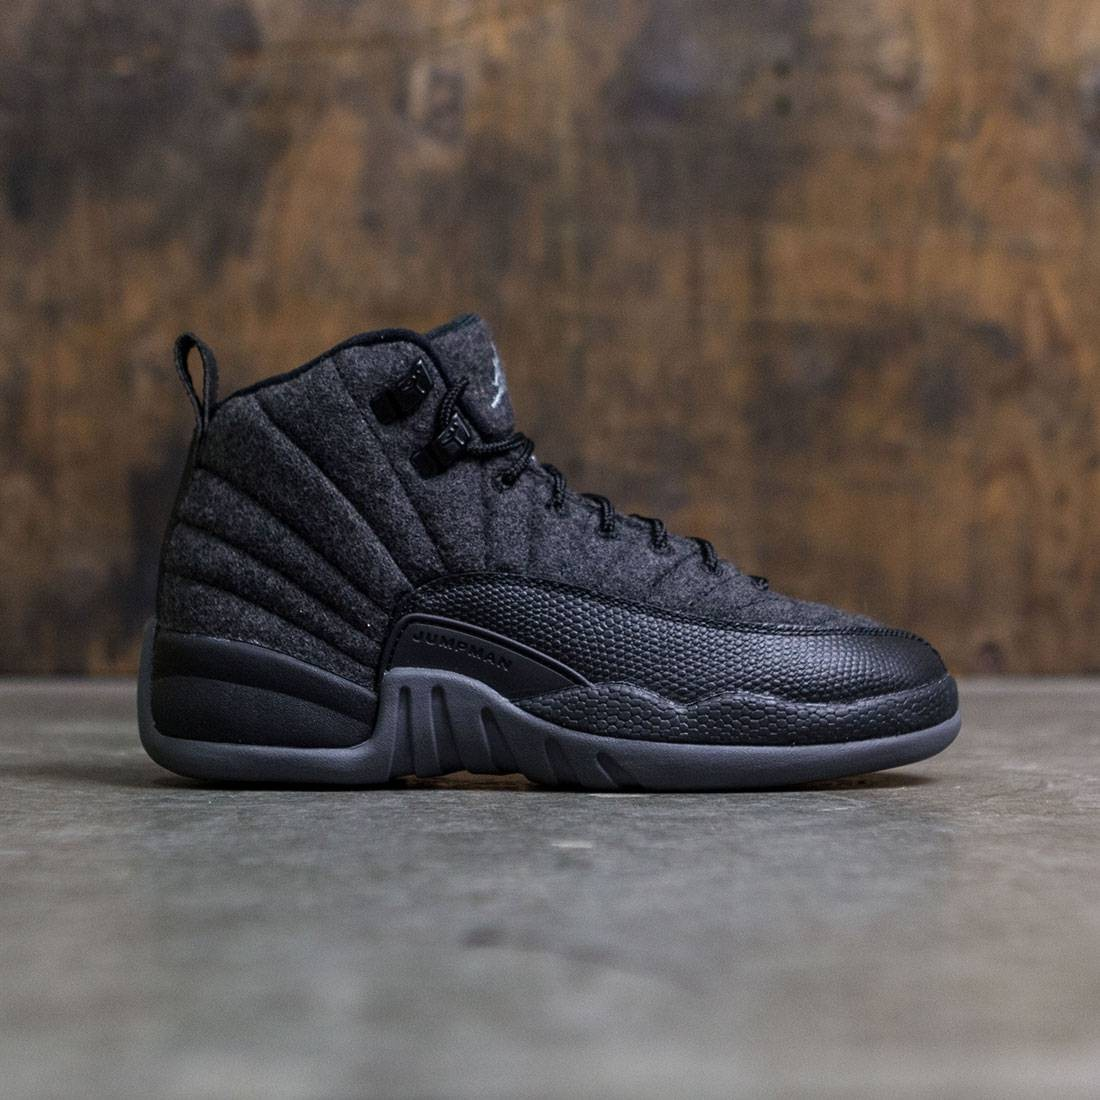 Jordan Big Kids Air Jordan 12 Retro Premium (GS) (dark grey / metallic silver-black)